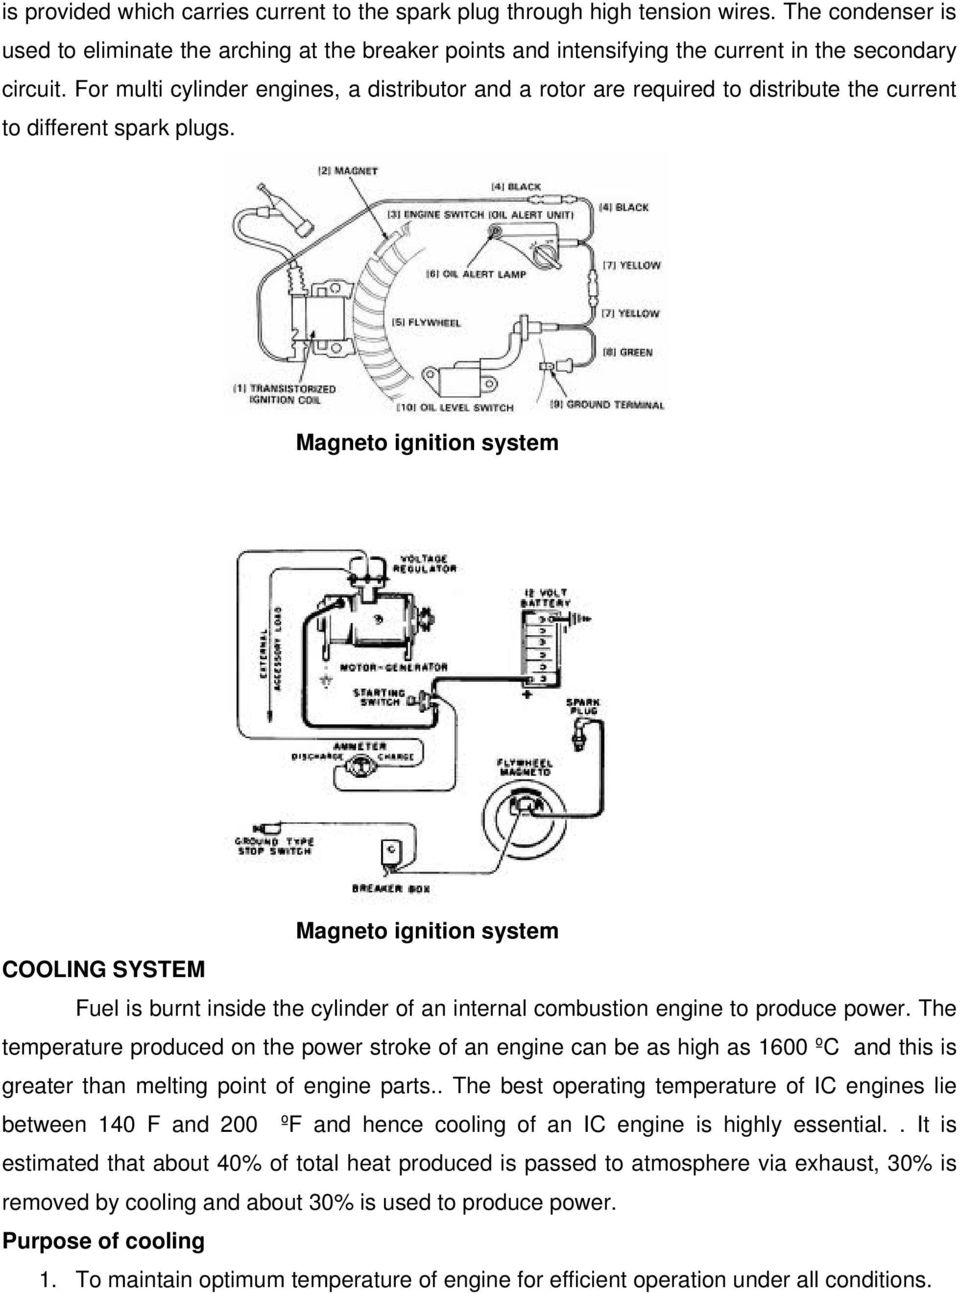 Lecture 3 Different Systems Of Ic Engine Cooling Lubricating Combustion Diagram For Idiots Multi Cylinder Engines A Distributor And Rotor Are Required To Distribute The Current